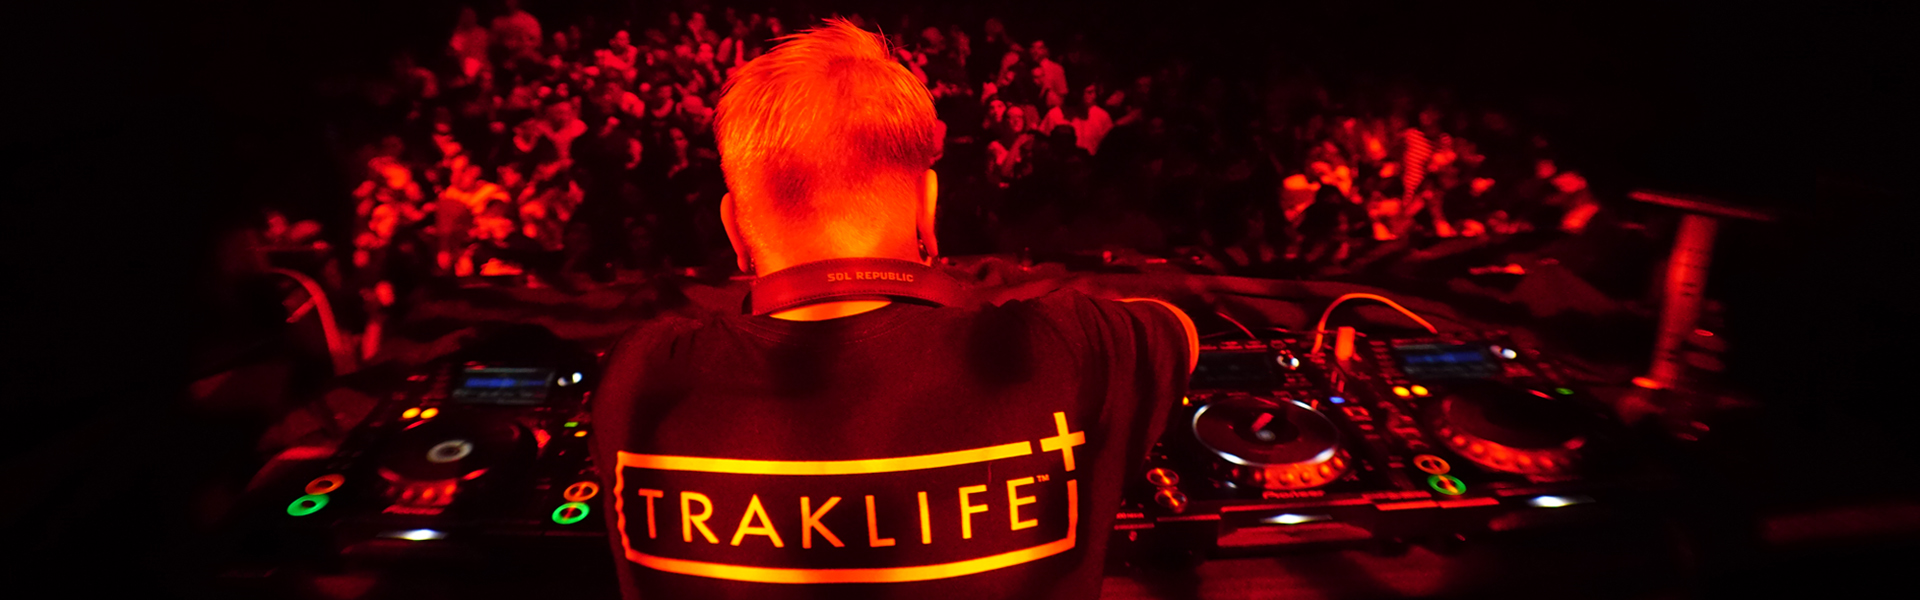 https://media.traklife.com/events/wp-content/uploads/sites/10/2018/10/traklife-events-banner6.jpg